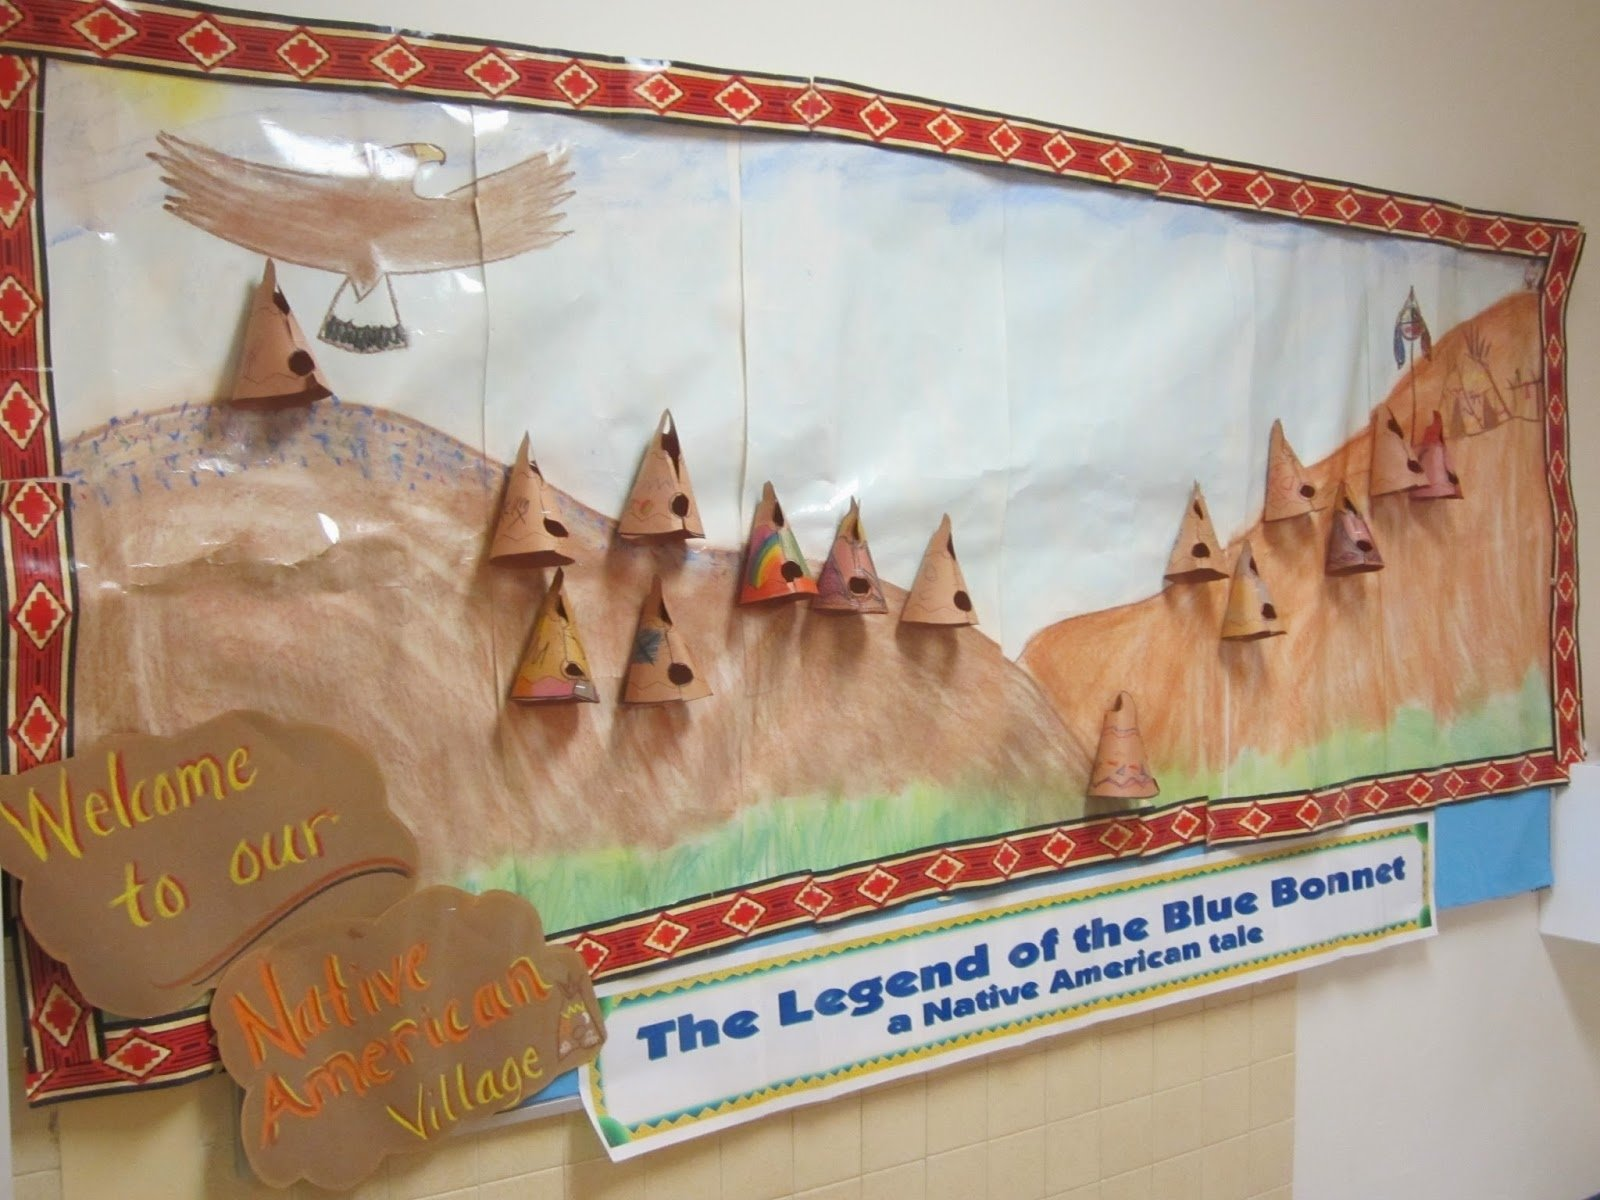 10 Most Recommended Native American Bulletin Board Ideas native american unit with bulletin board ideas crafts suggested 2020